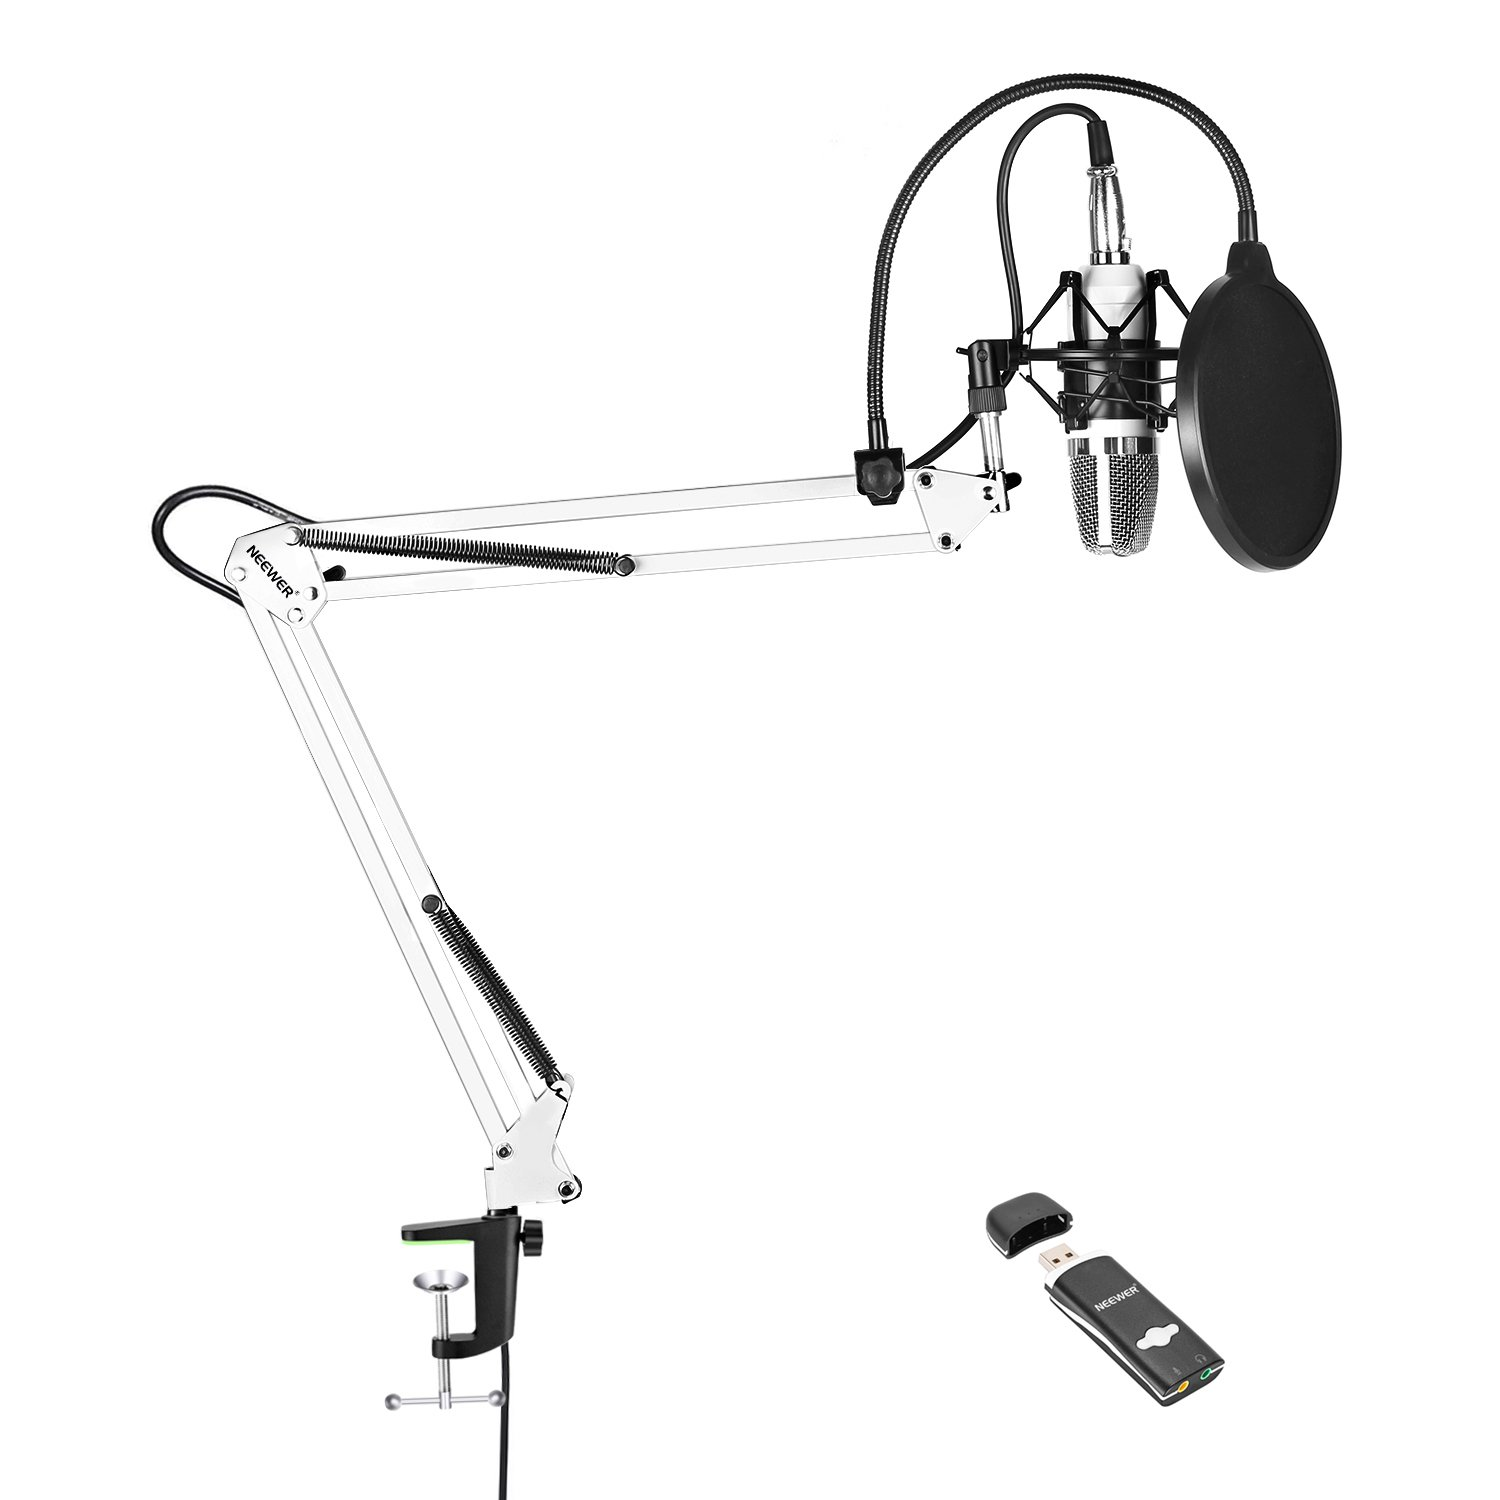 Neewer NW-700 Pro PC Microphone Kit with USB Sound Card Adapter, Shock Mount, Mic Suspension Scissor Arm Stand(White), Pop Filter for Computer Studio Recording Broadcast for YouTube Live Periscope by Neewer